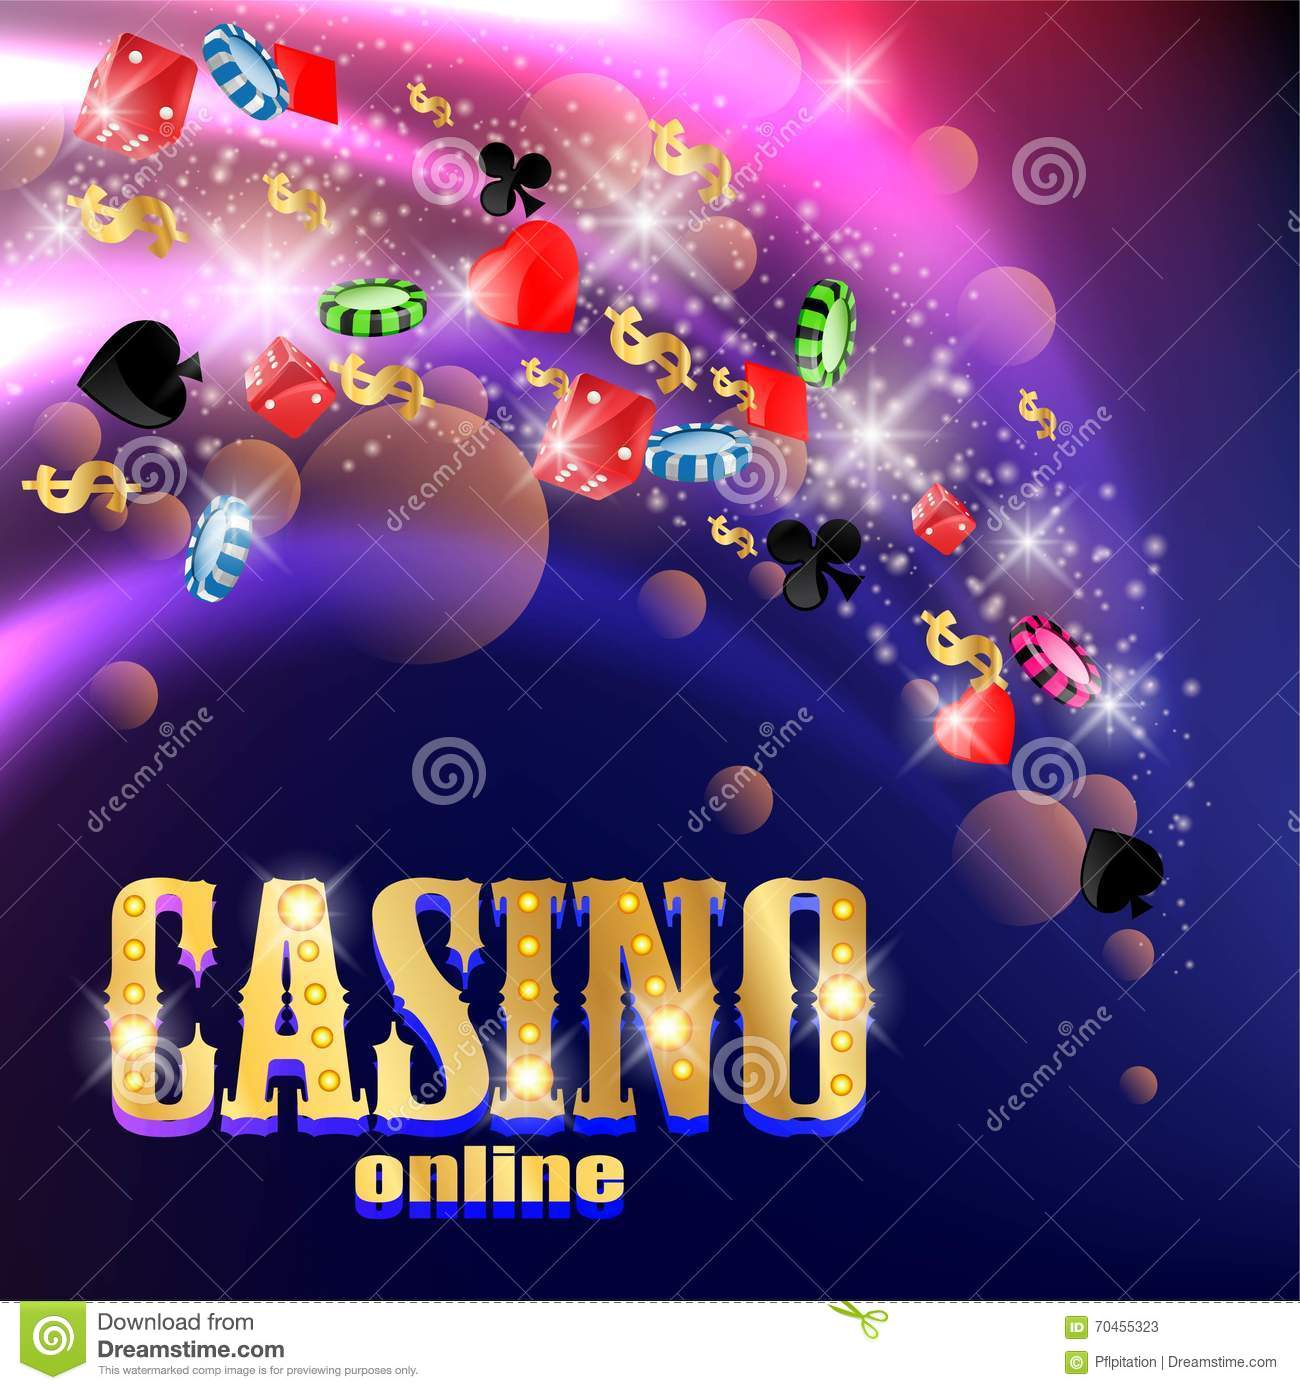 casino royal online anschauen blue heart